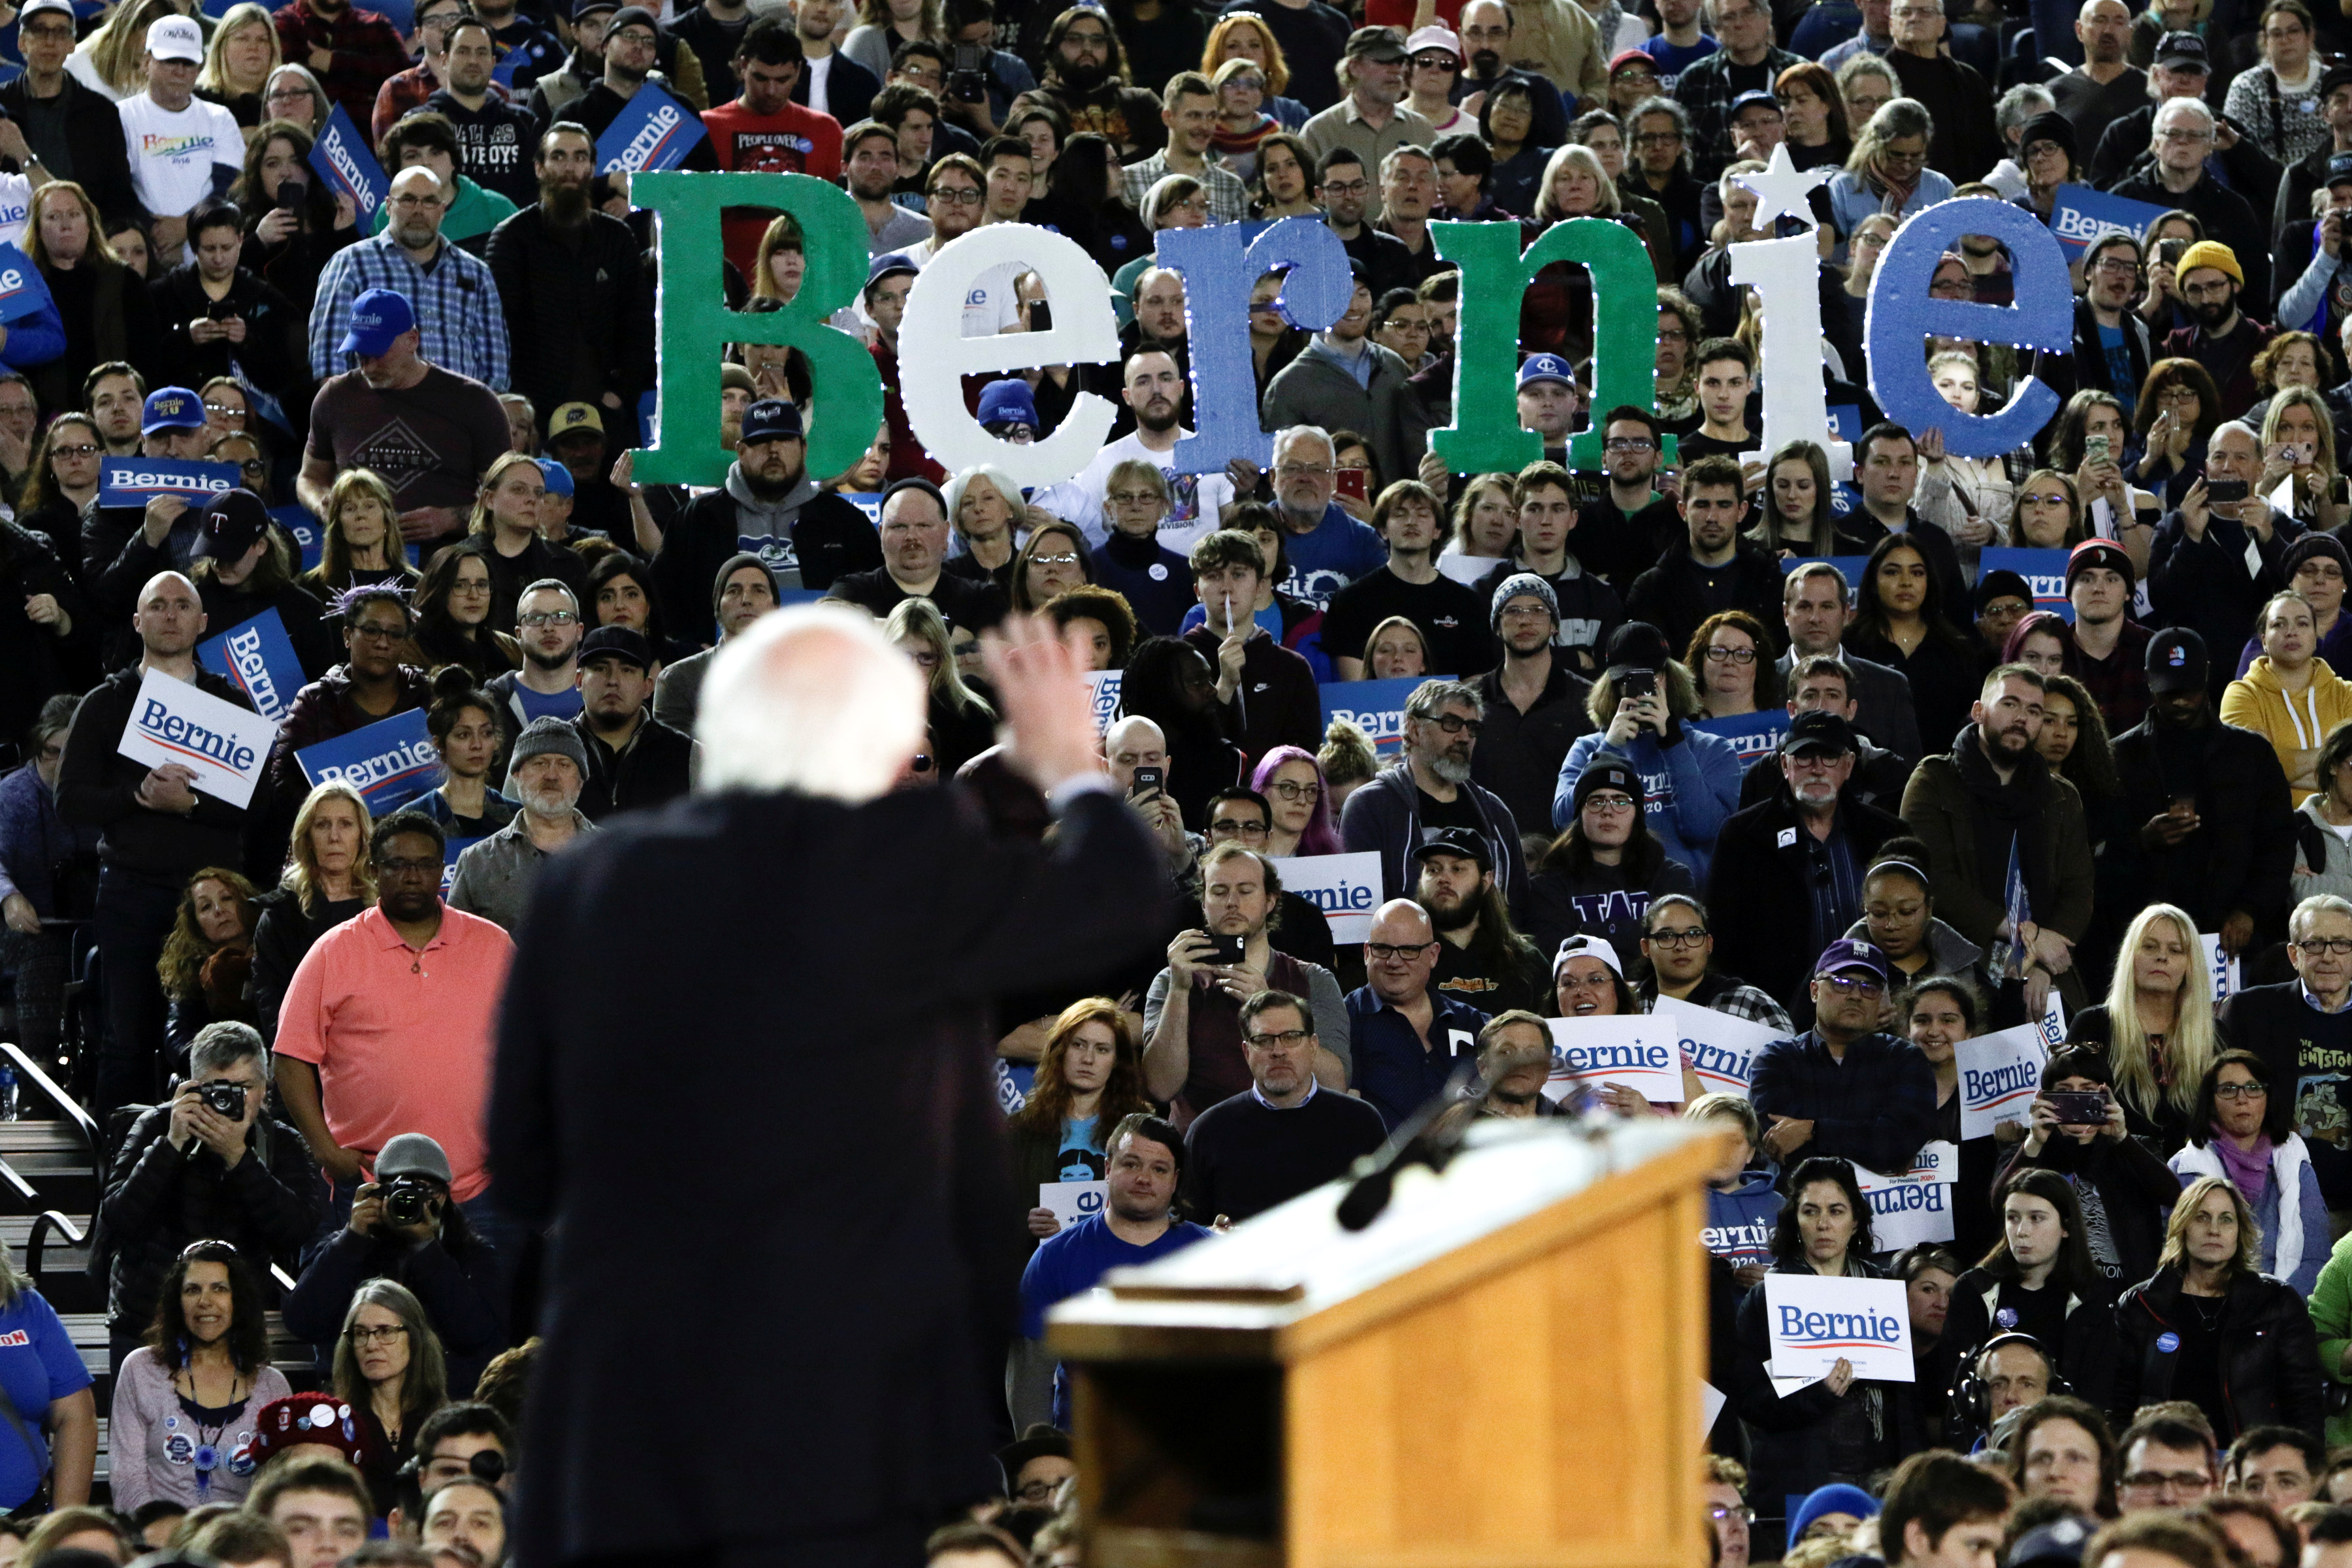 U.S. Democratic 2020 presidential candidate Senator Bernie Sanders speaks at a campaign rally in the Tacoma Dome in Tacoma, Washington, U.S. Feb. 17, 2020. REUTERS/Jason Redmond